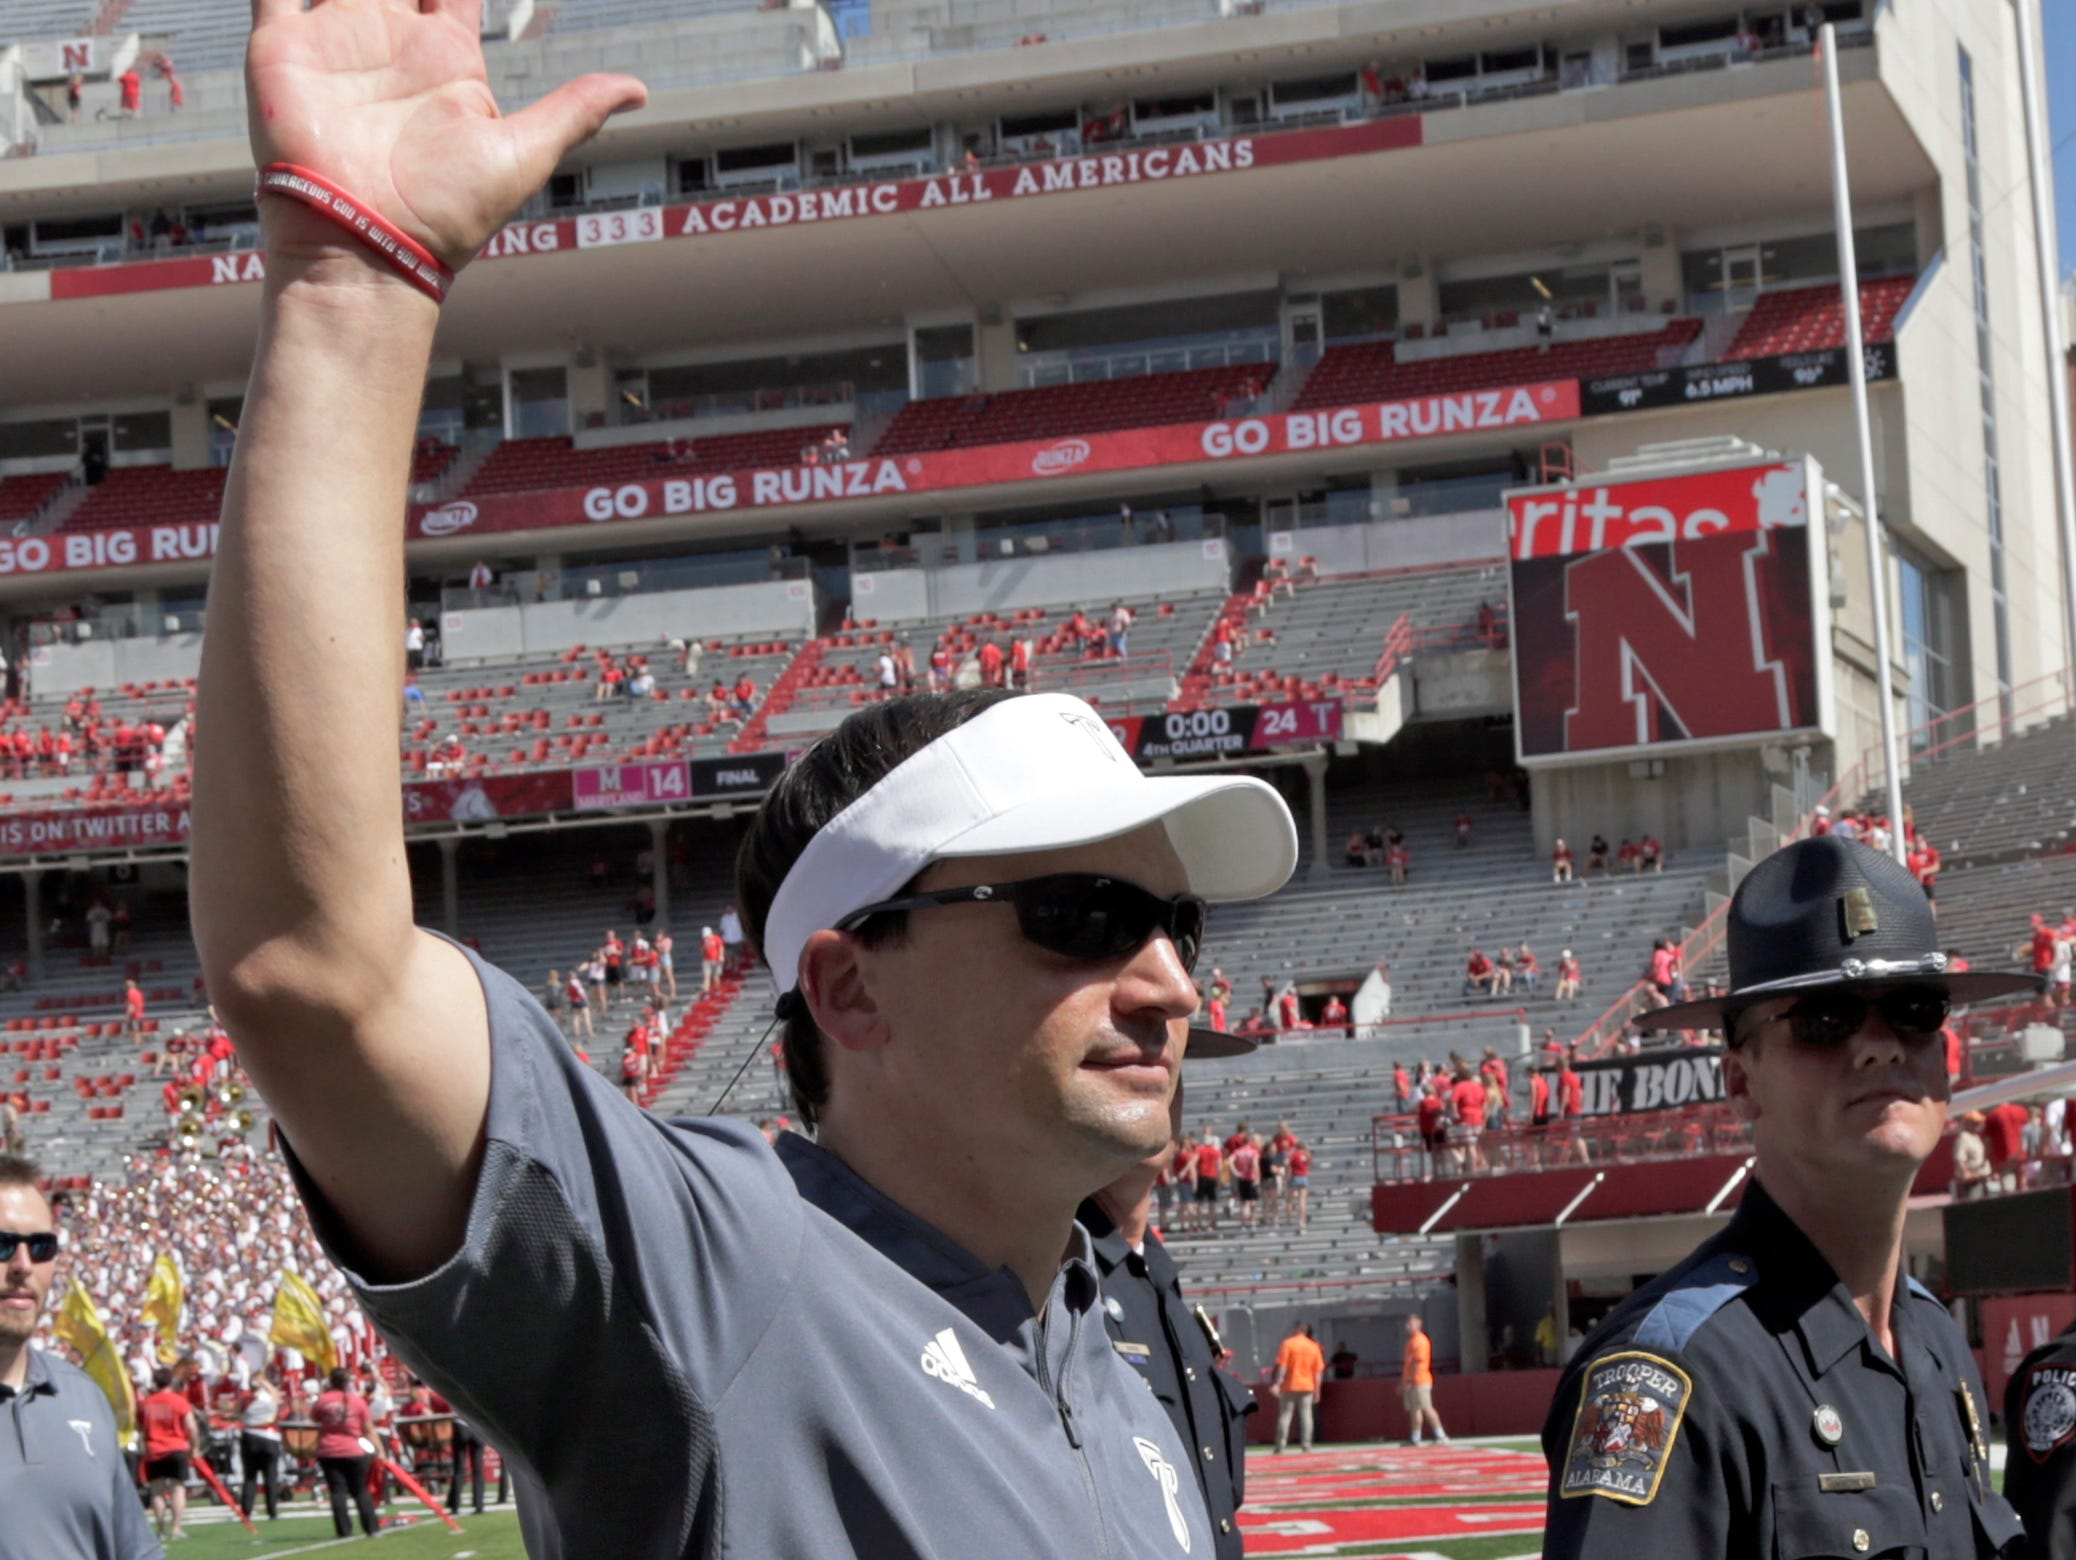 Troy head coach Neal Brown waves to fans as he leaves the field following an NCAA college football game against Nebraska in Lincoln, Neb., Saturday, Sept. 15, 2018. Troy won 24-19. (AP Photo/Nati Harnik)